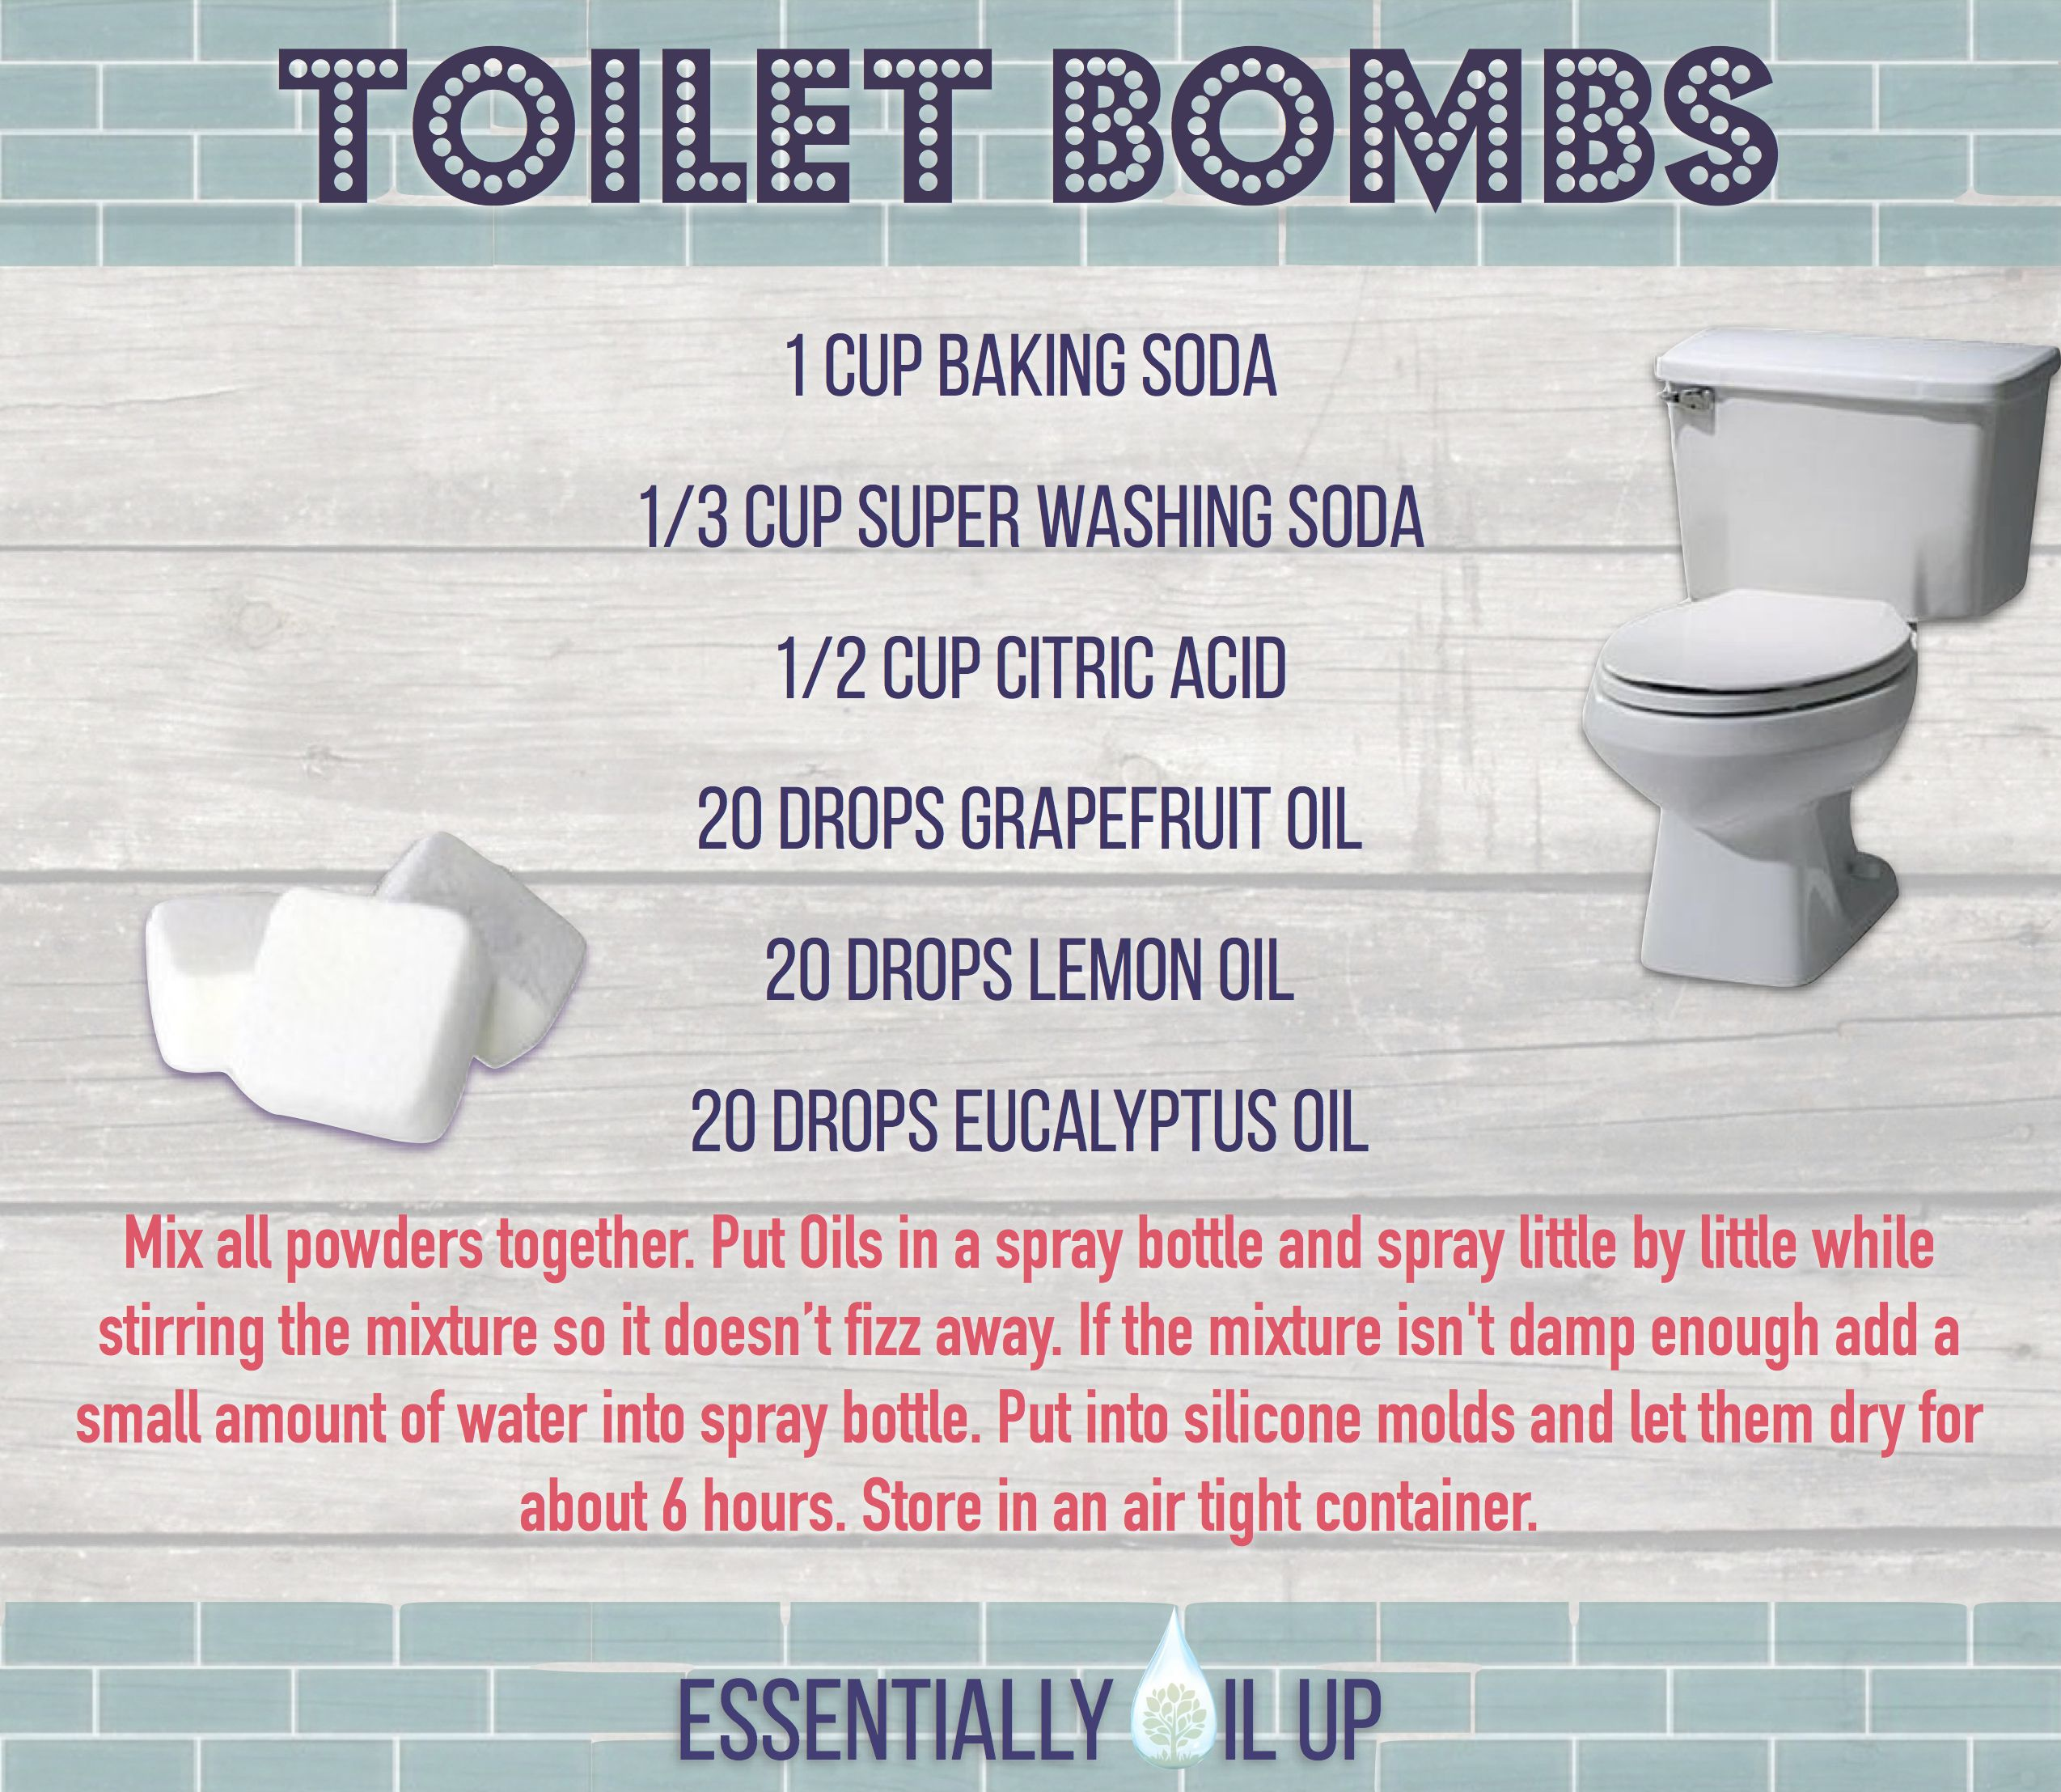 Diy Toilet Bombs Infused With Essential Oils Tried True Recipes Pinterest Toilet